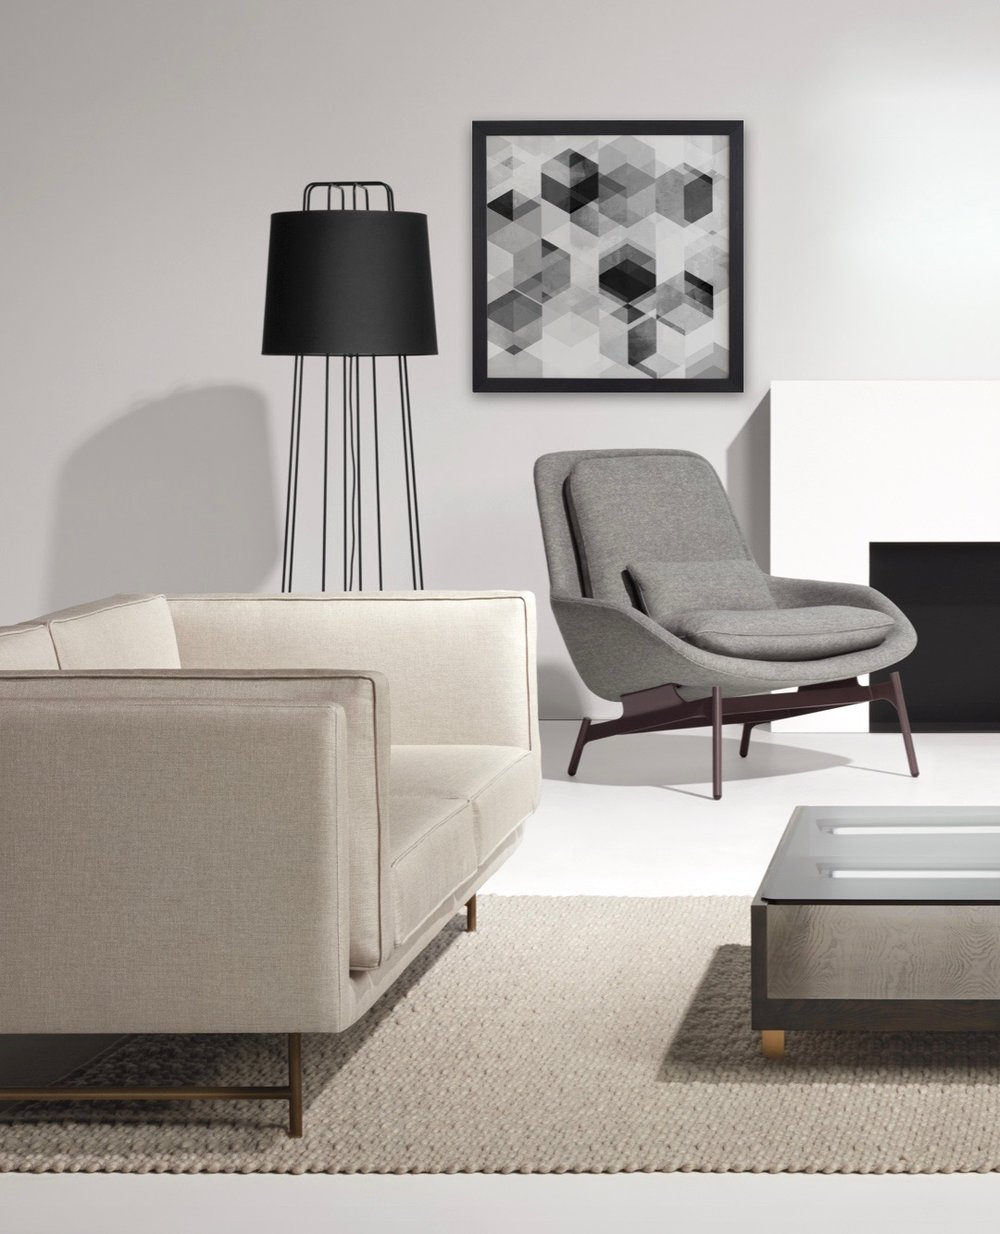 Do you need help planning your room? - At Hub Modern we offer complimentary design services including space planning, furniture and fabric selection and we can help choose rugs, lighting and home accents. We will even help you select the perfect paint colors for your home.Stop in or contact us to schedule an in-home consultation.